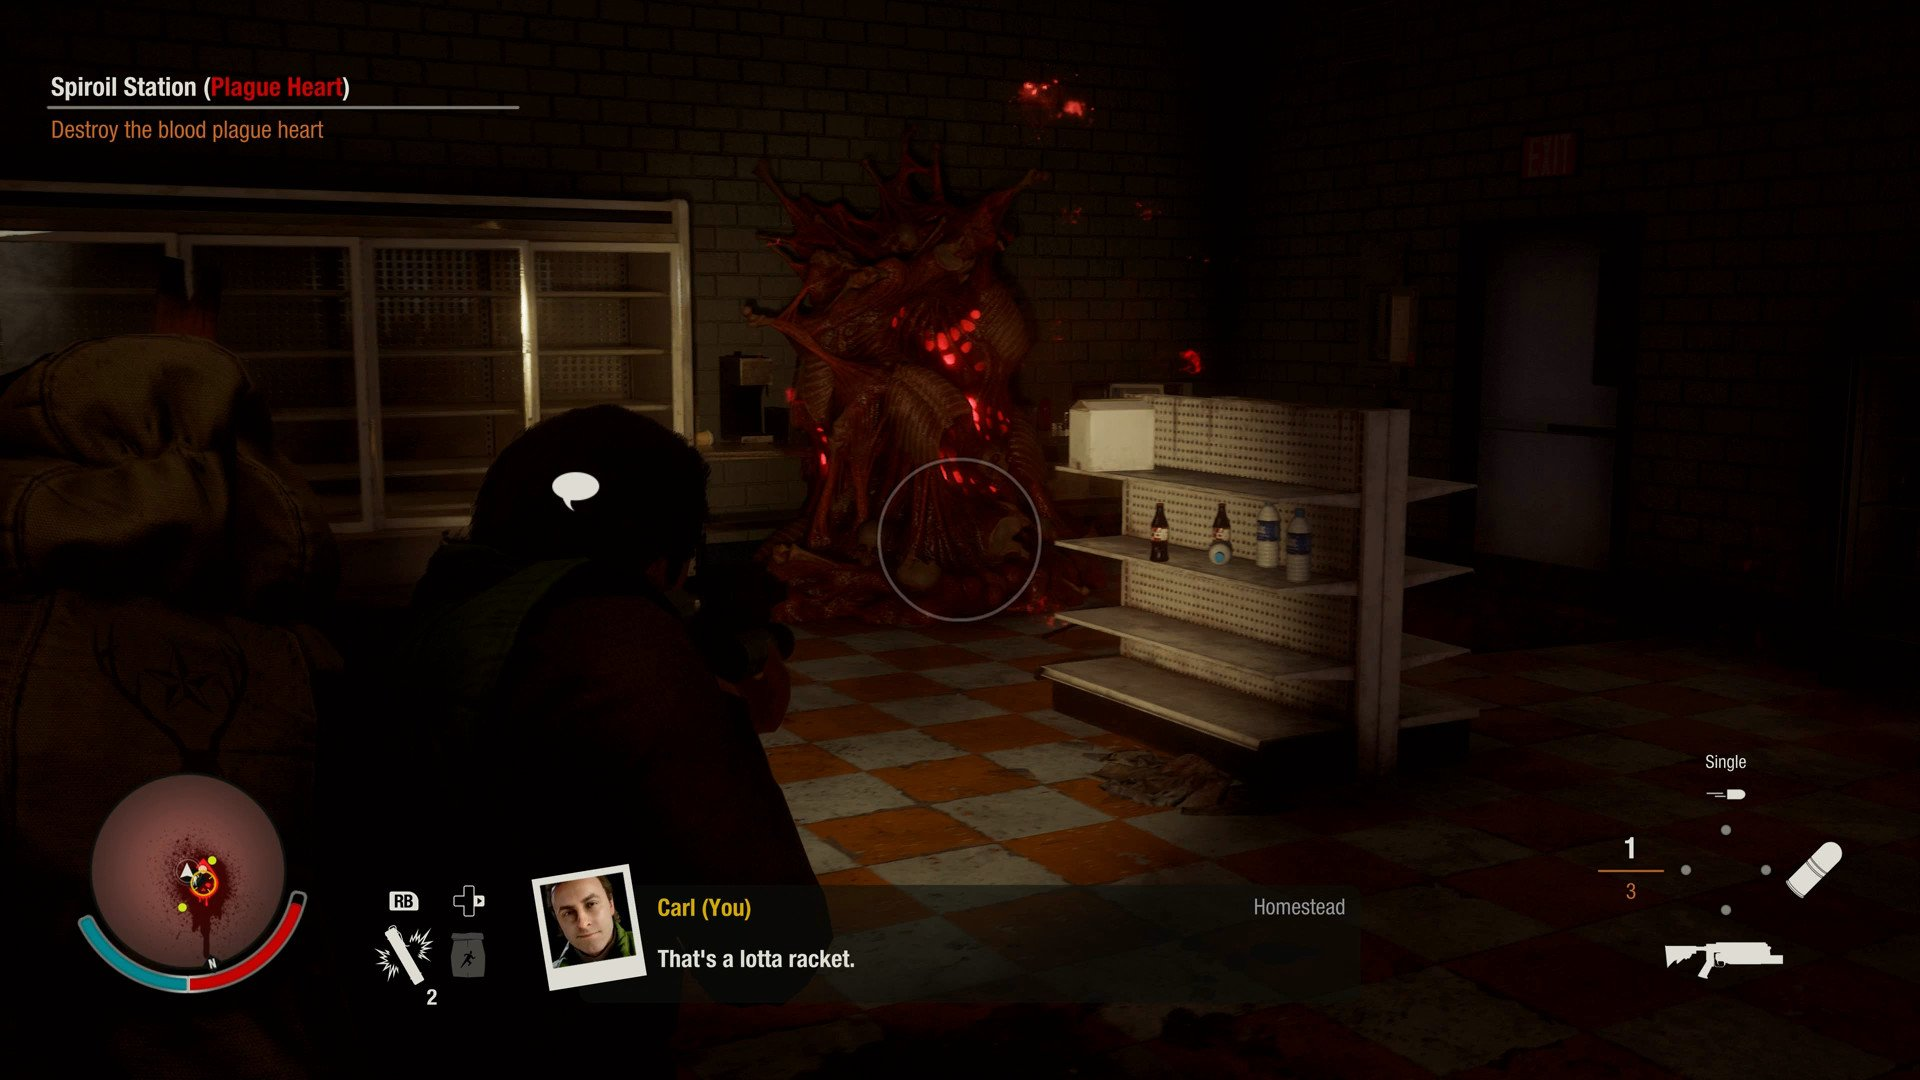 State of Decay 2 tips and tricks  How to deal with Plague Hearts and     Plague Hearts are mounds of festering flesh that spawn randomly in  buildings on your map  There is a fixed amount of them per map  and part of  the  end